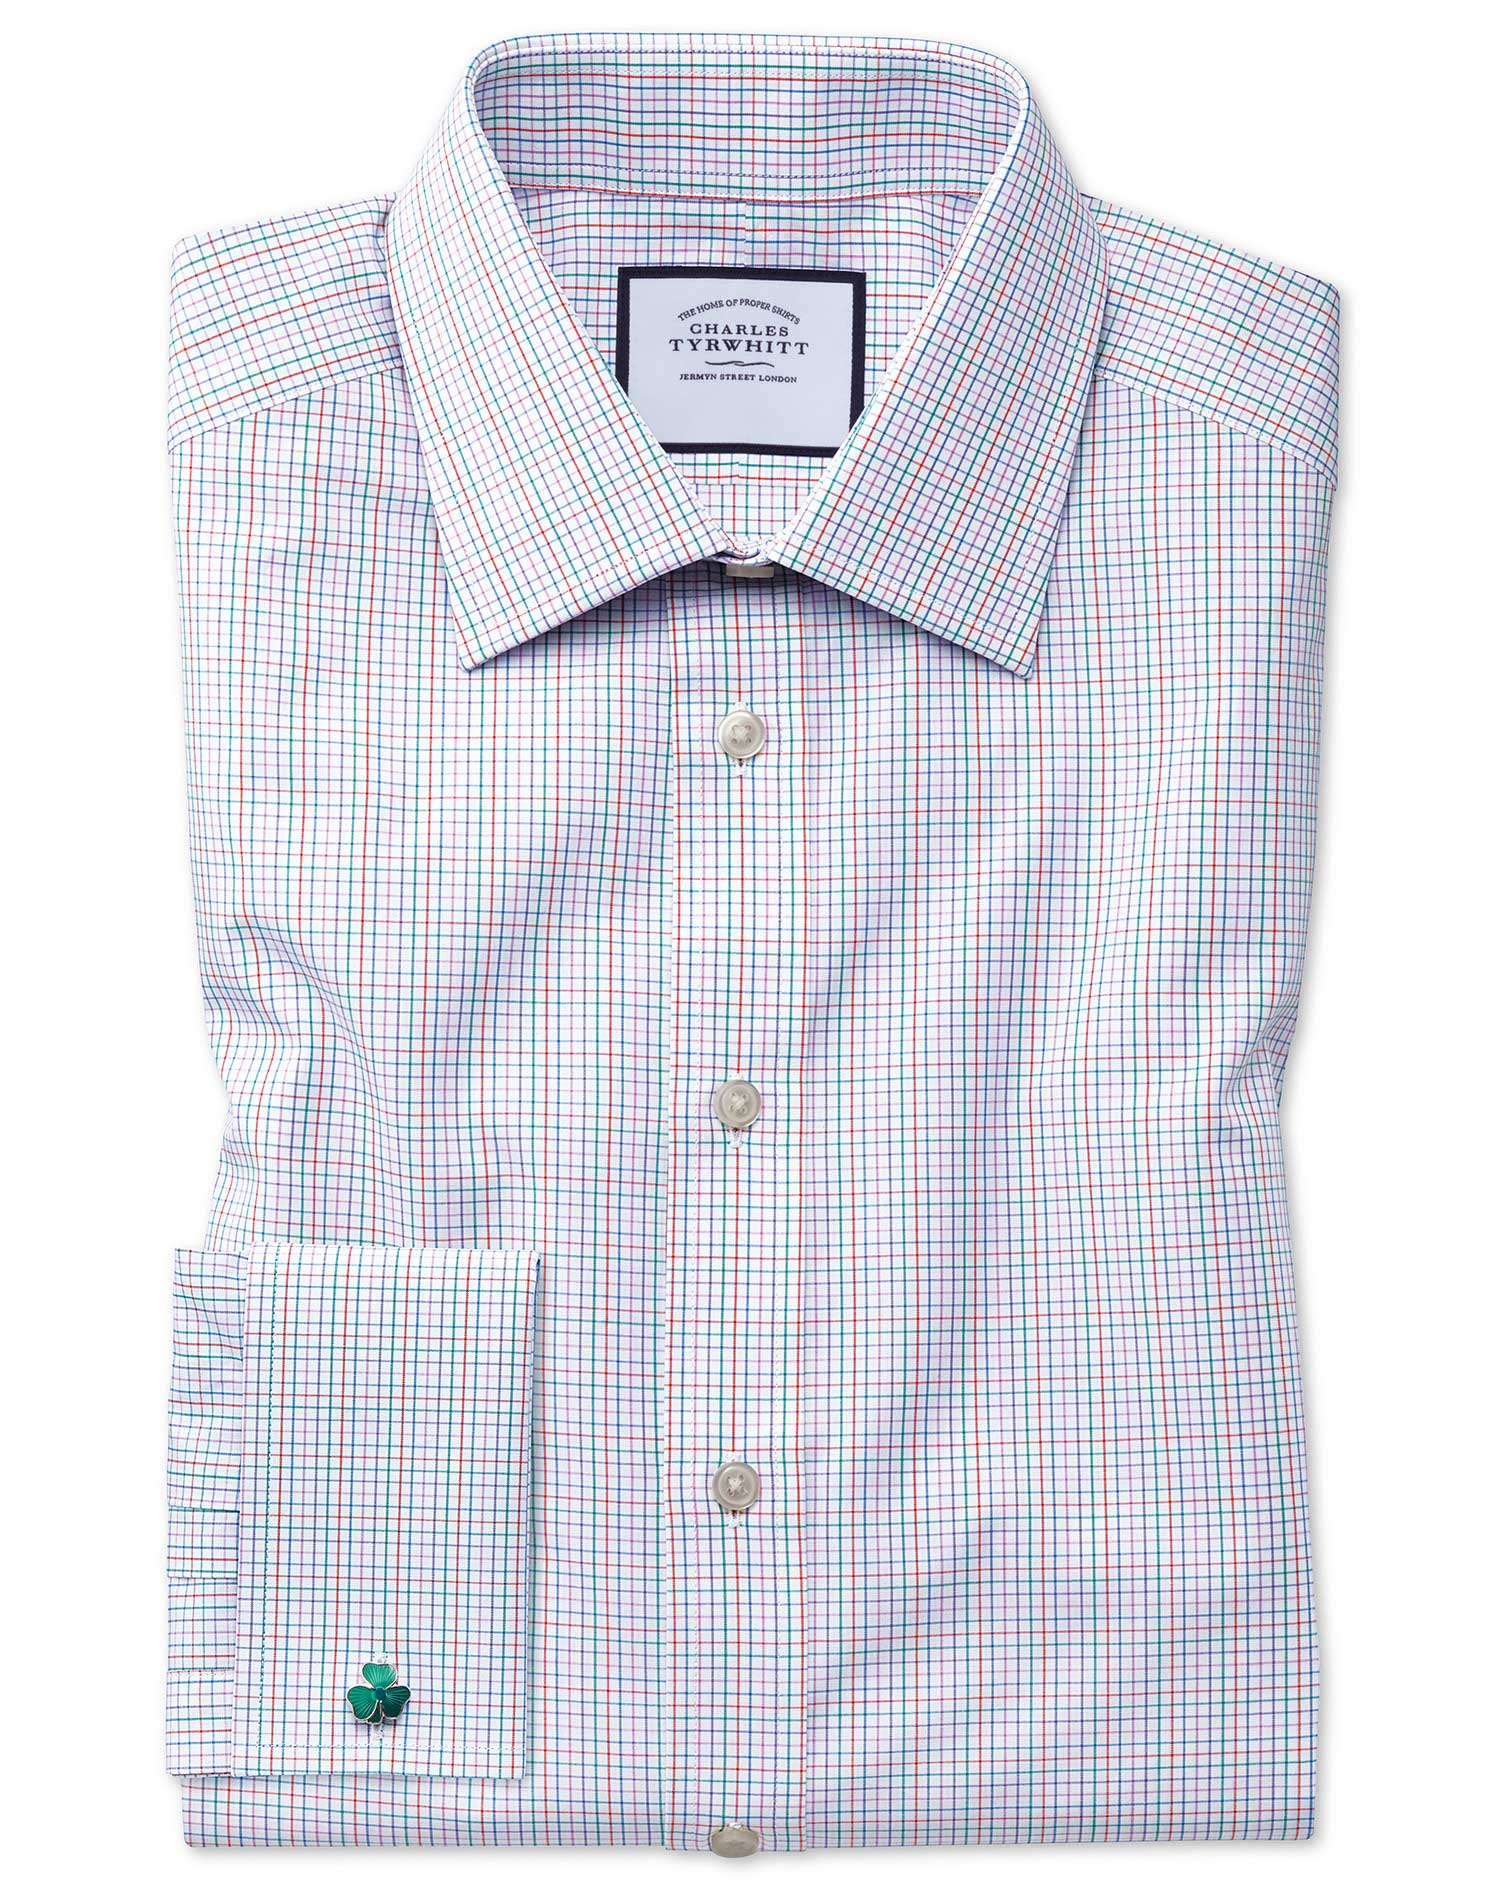 Classic Fit Pink Multi Check Egyptian Cotton Formal Shirt Double Cuff Size 16.5/33 by Charles Tyrwhi